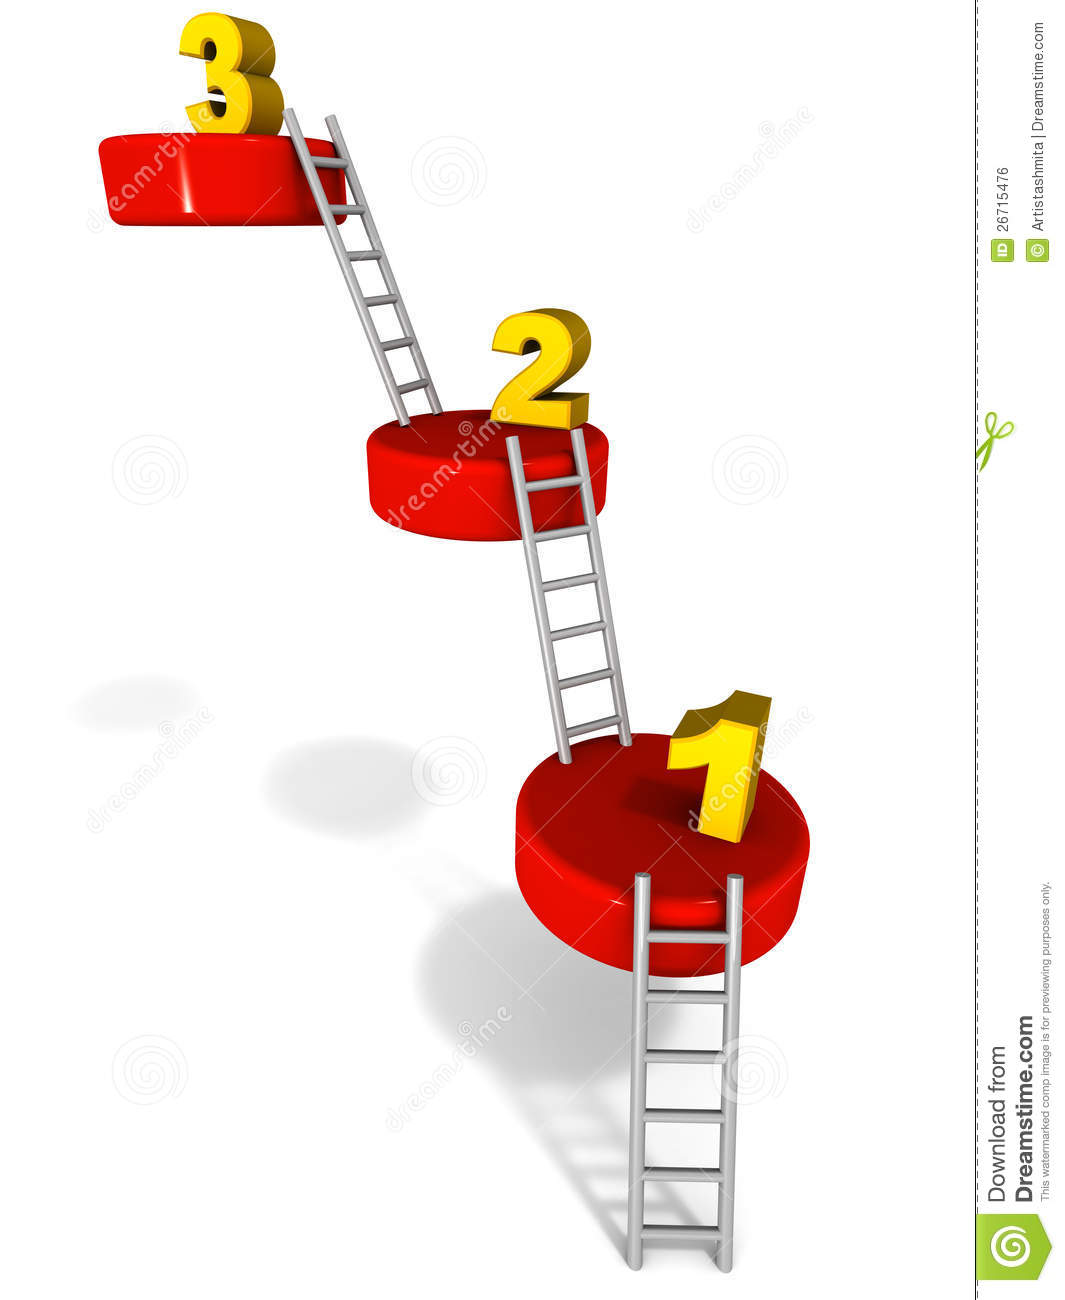 Steps One Two Three Royalty Free Stock Image